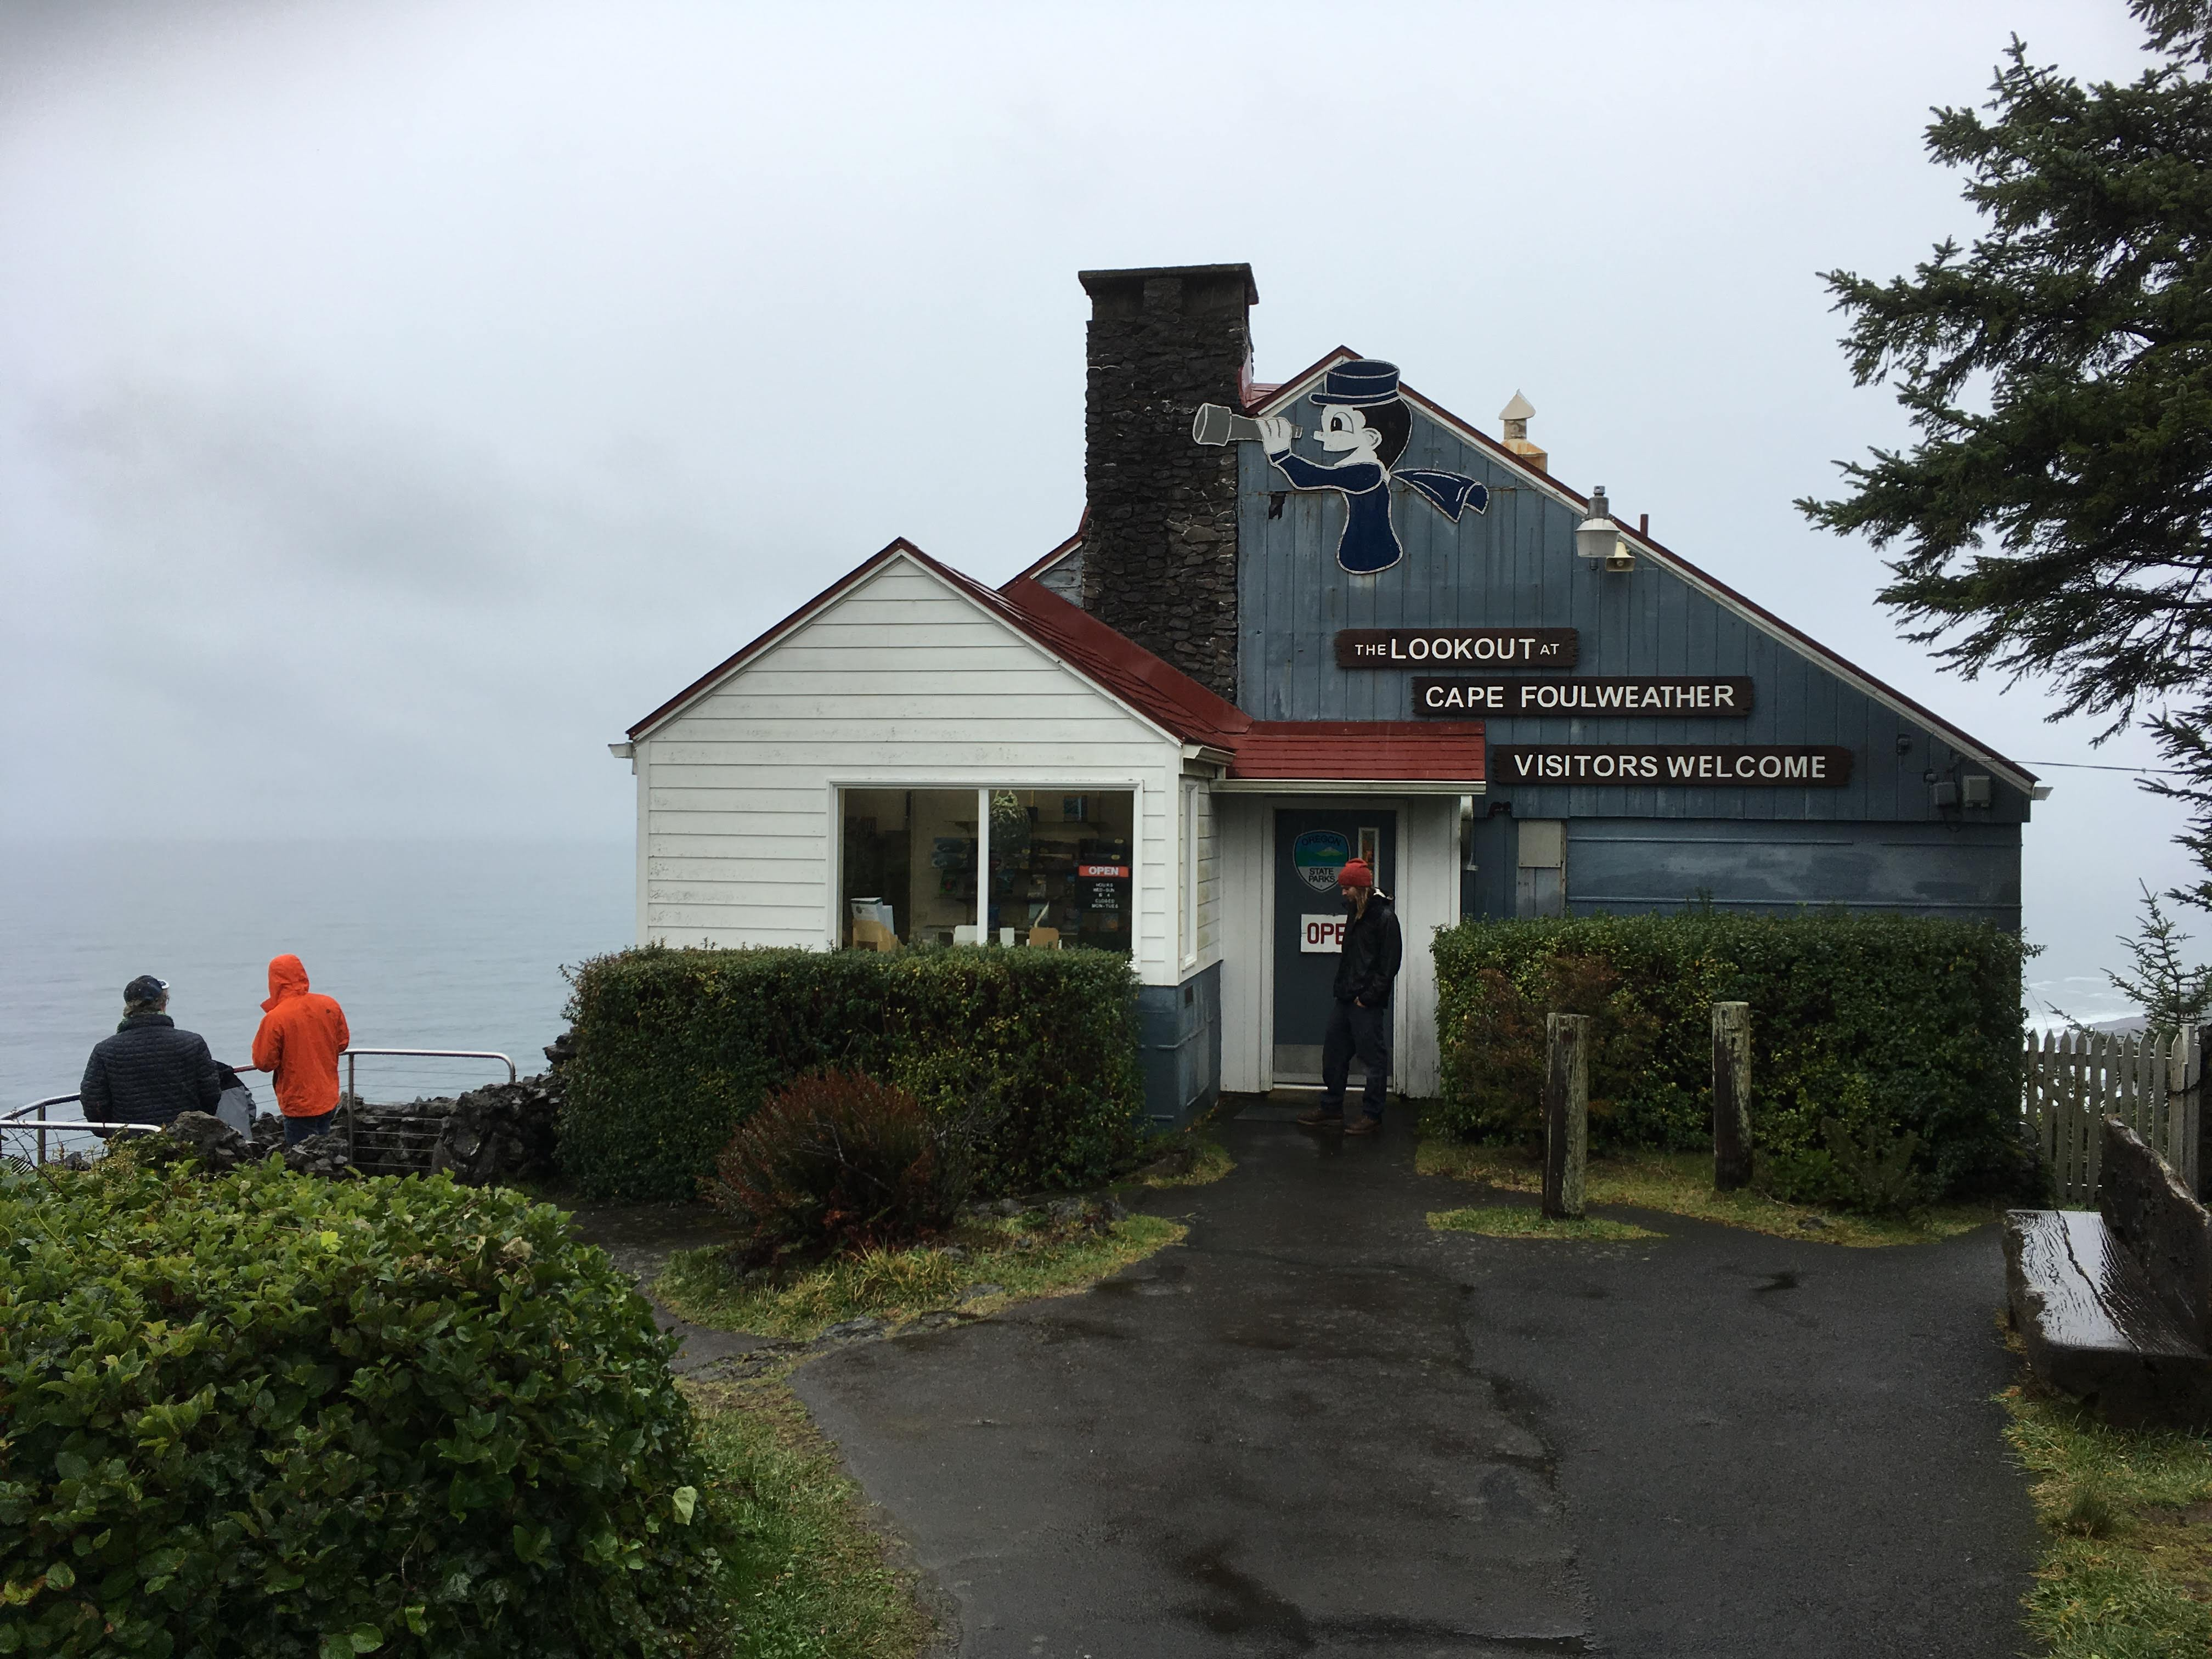 The Lookout at Cape Foulweather